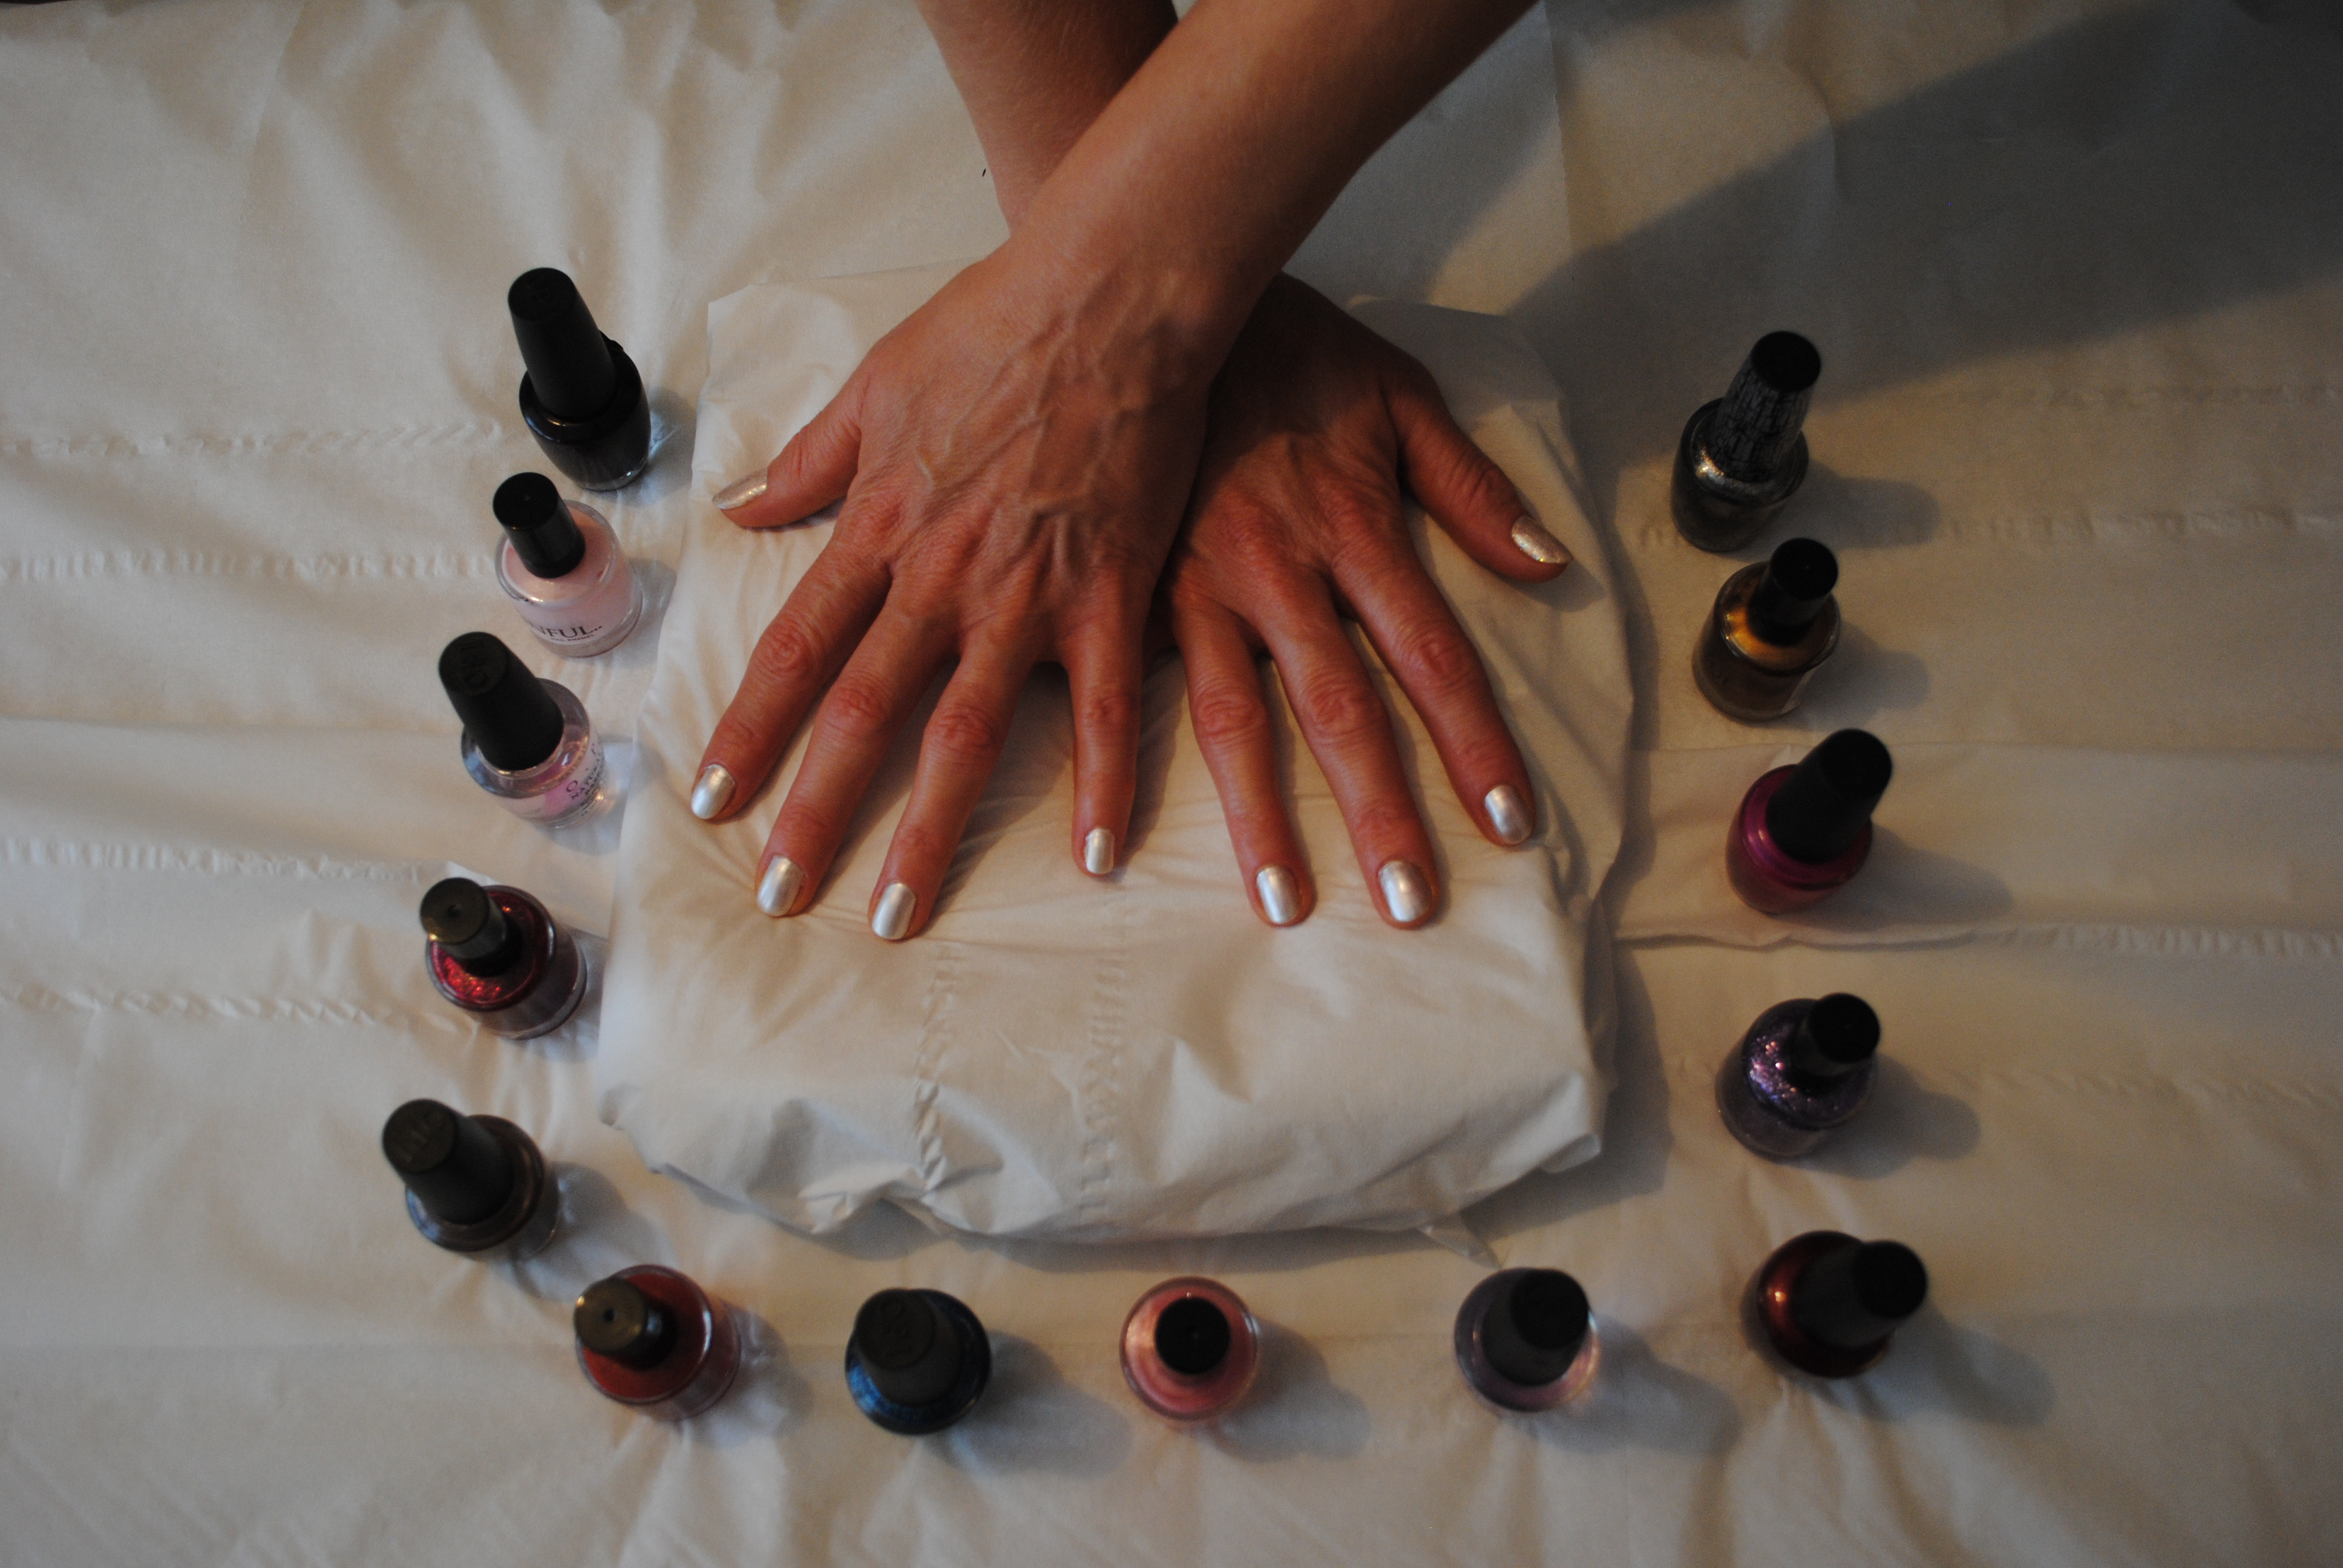 Manicure pedicure blackdown beauty complementary therapies what a difference a manicure andor pedicure can make whether it is a simple file and paint or a luxurious parrafin wax treatment a proper manicure andor solutioingenieria Choice Image